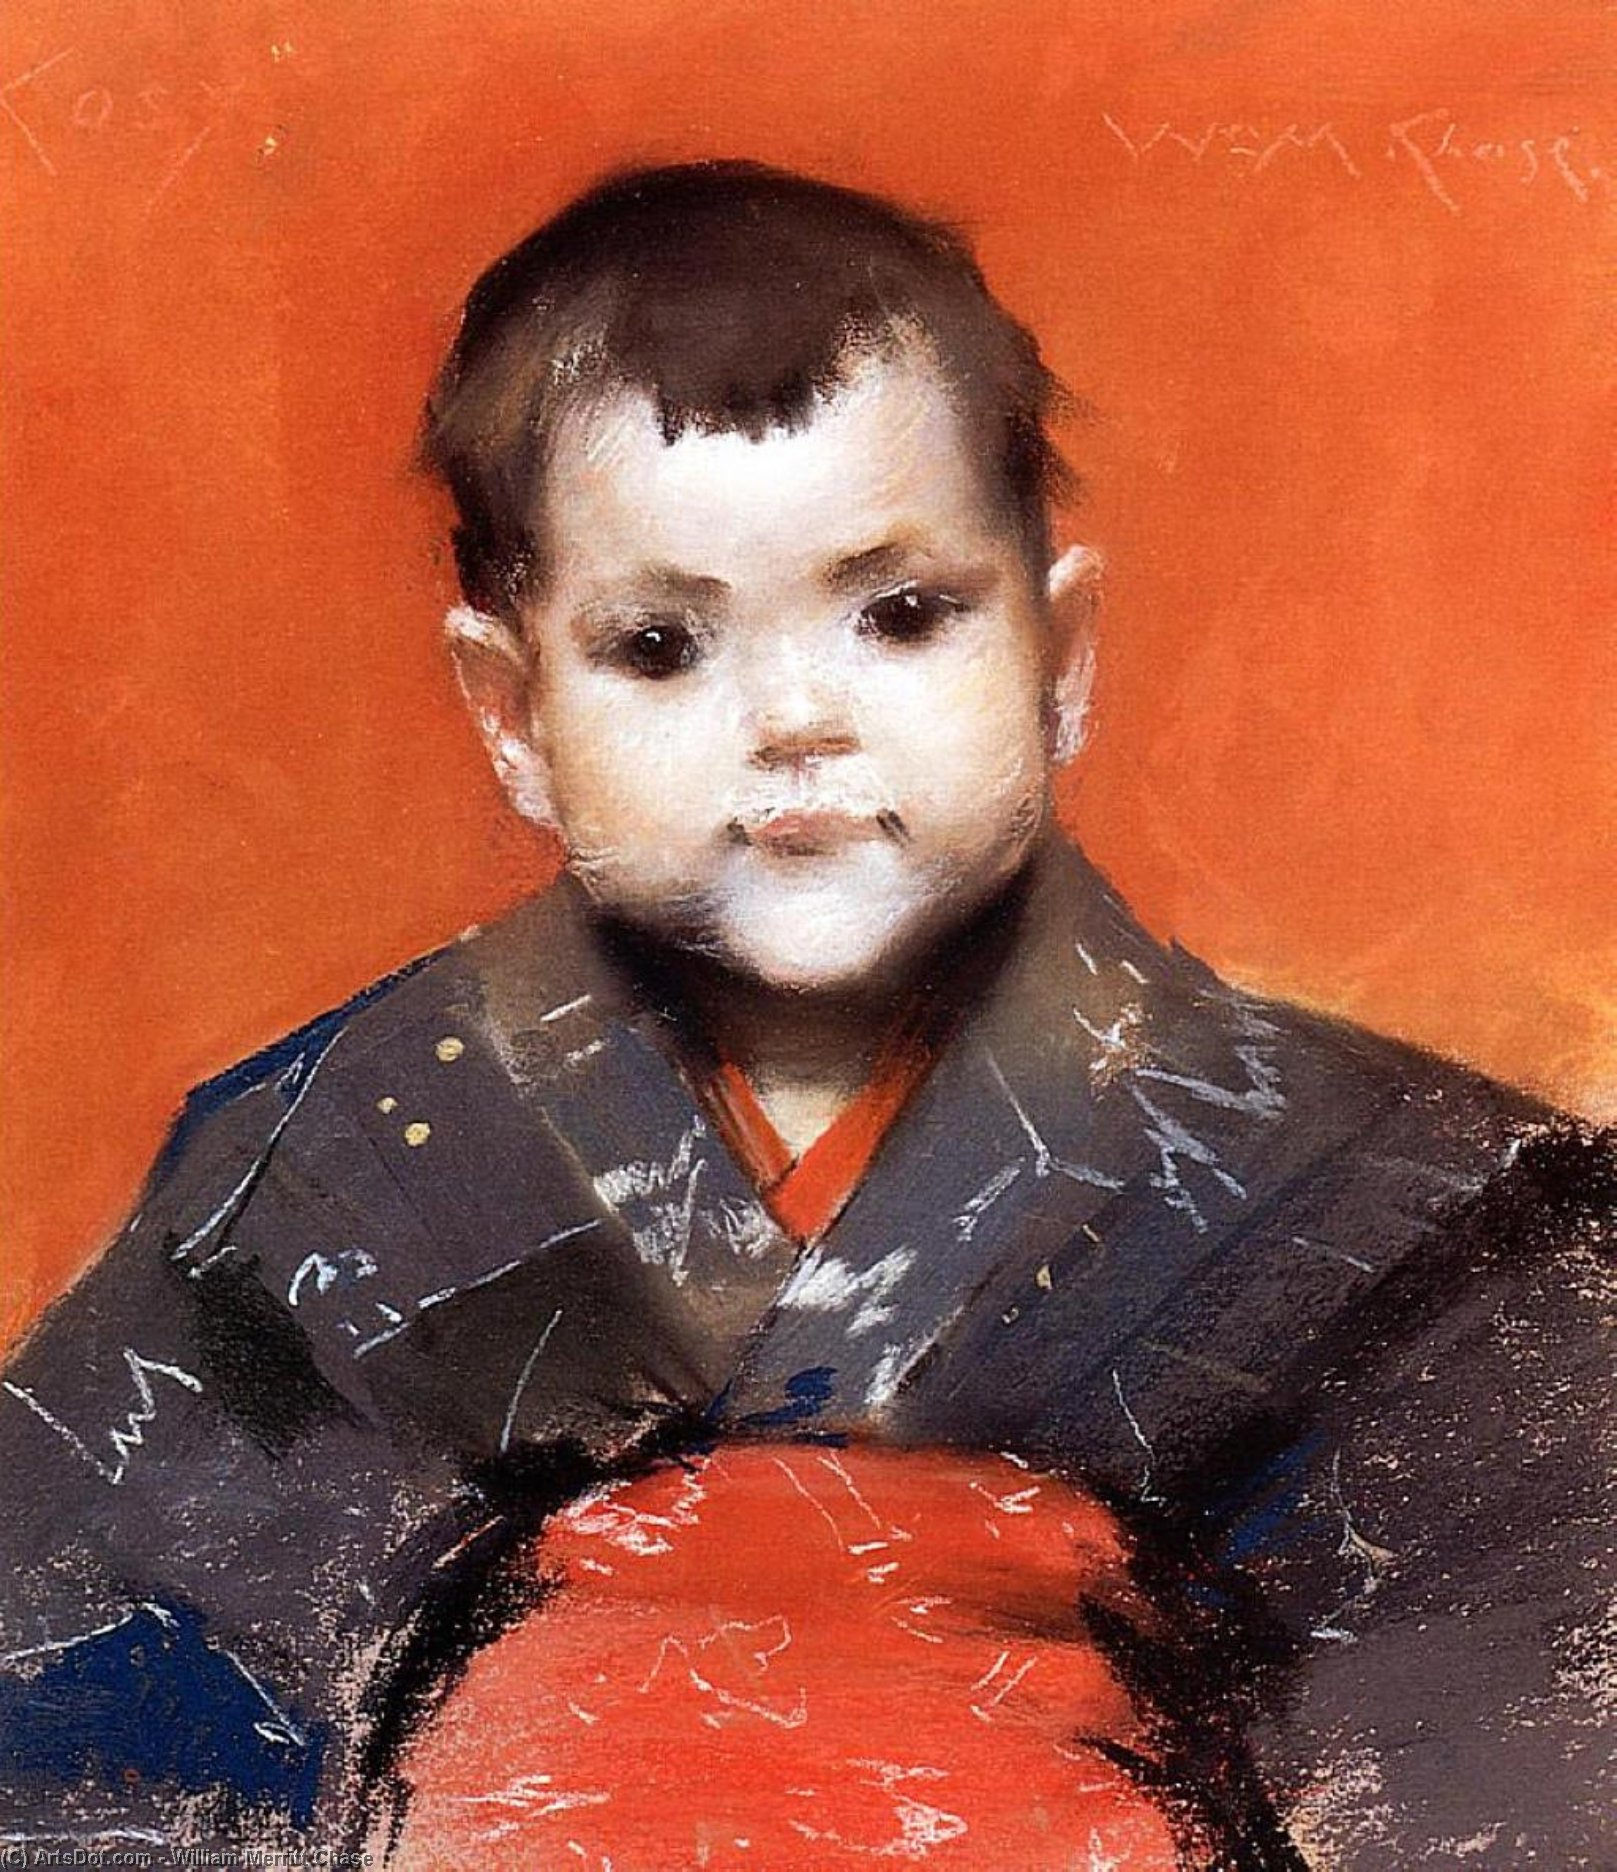 mein baby ( aka Behaglich ), pastell von William Merritt Chase (1849-1916, United States)